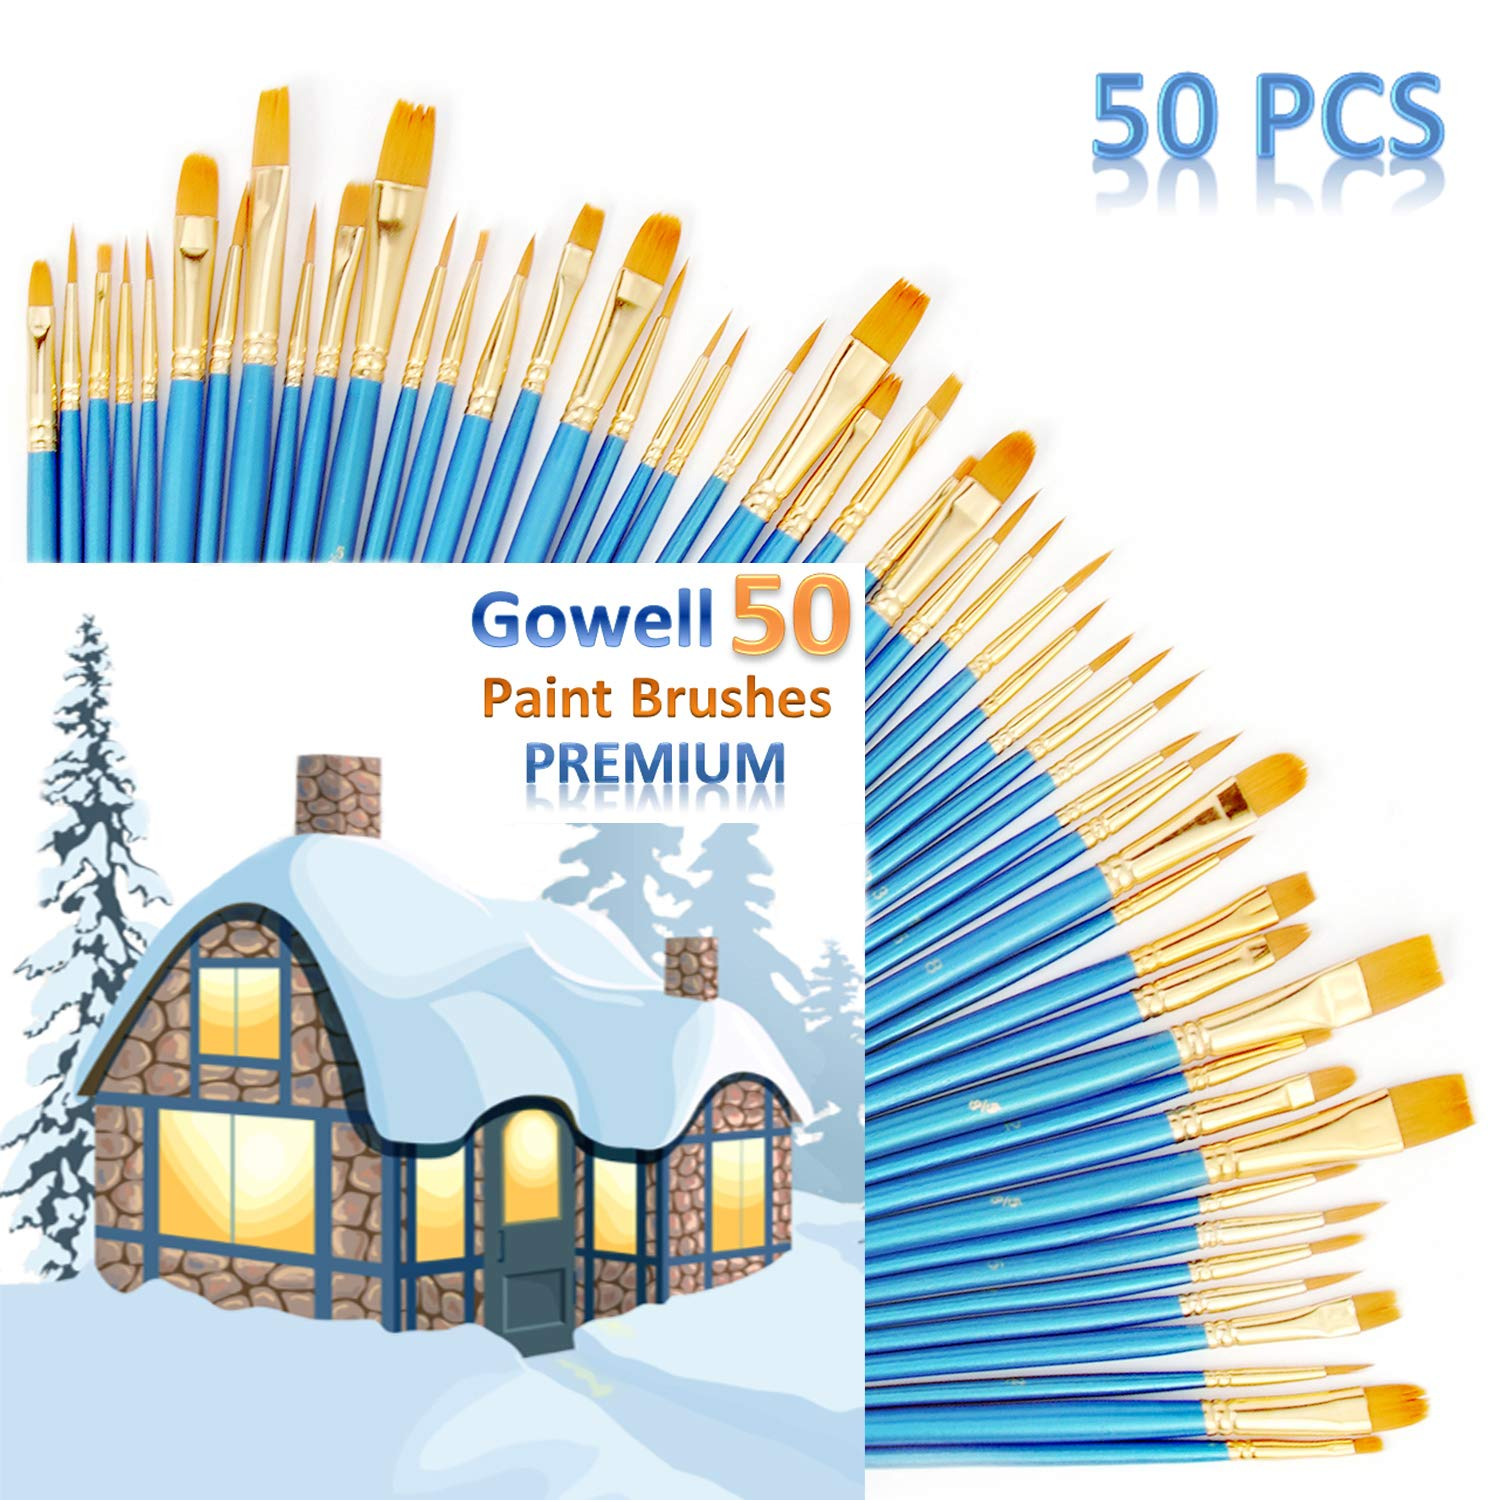 Acrylic Paint Brushes, (5Packs/50pcs) Craft Paint Brushes for Acrylics, Nylon Hair Brushes for All Purpose Oil Watercolor, Painting Artist Professional Kits